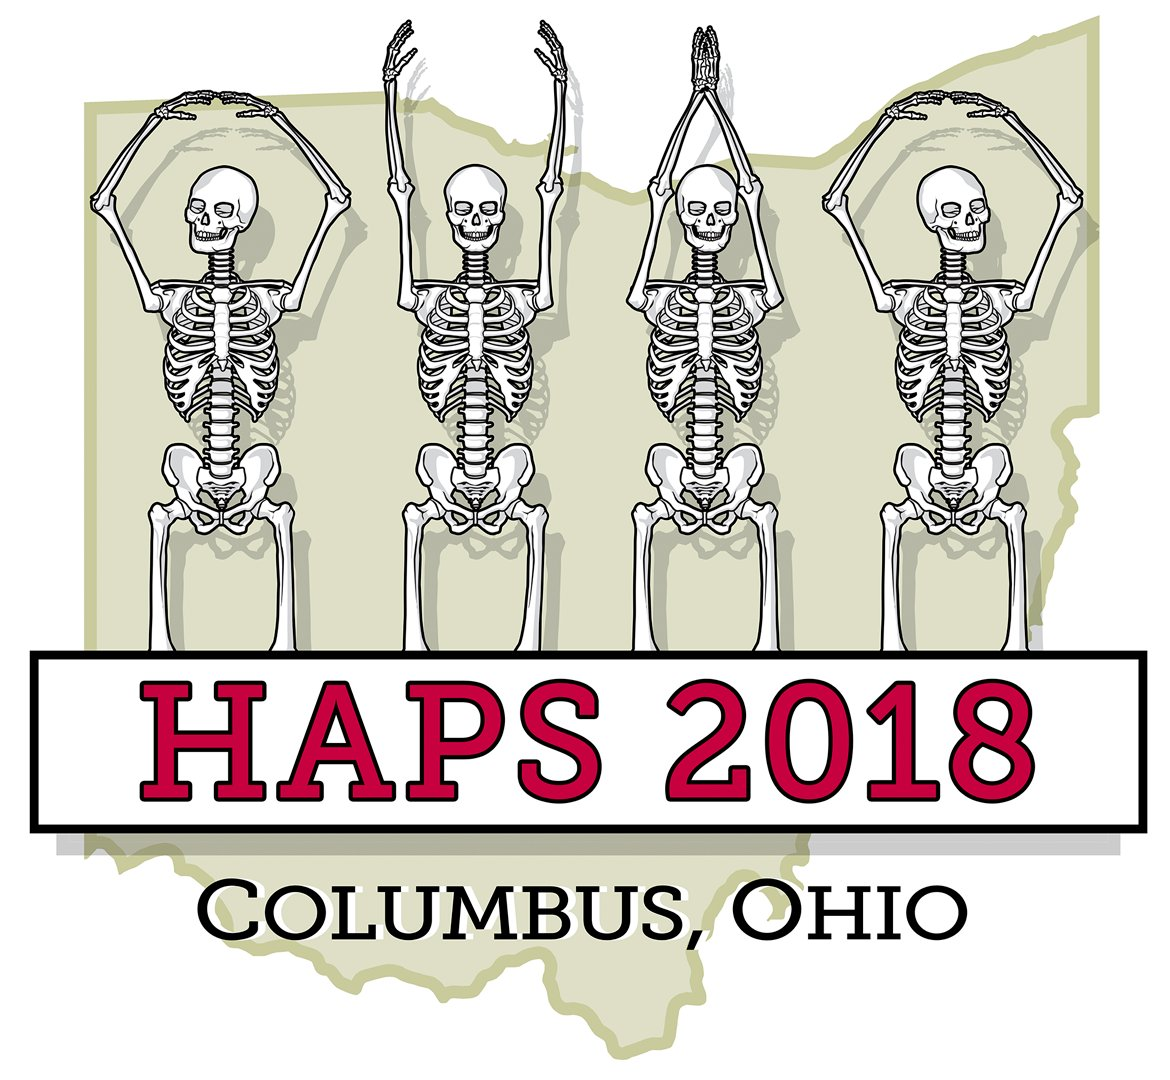 Registration is open for the 2018 @HumanAandPSoc Conference hosted at #OSUCOM. We're looking forward to seeing you all at @OhioState! #HAPS  http://www. hapsweb.org/?page=2018land ing &nbsp; … <br>http://pic.twitter.com/LowDdR4InT